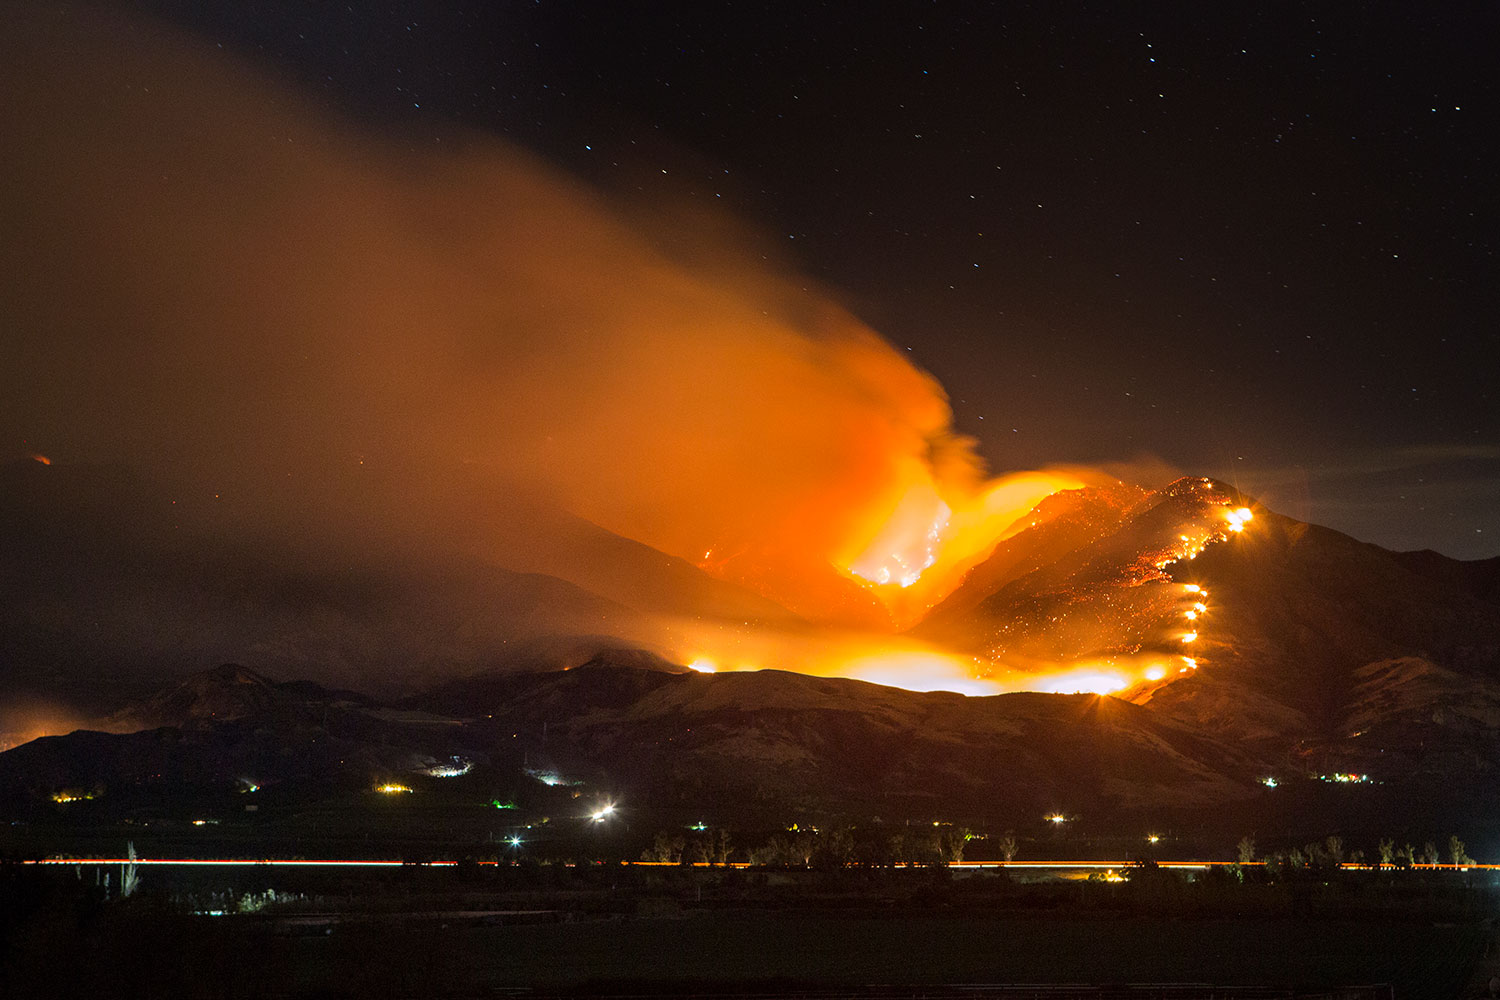 Fire on mountain in California